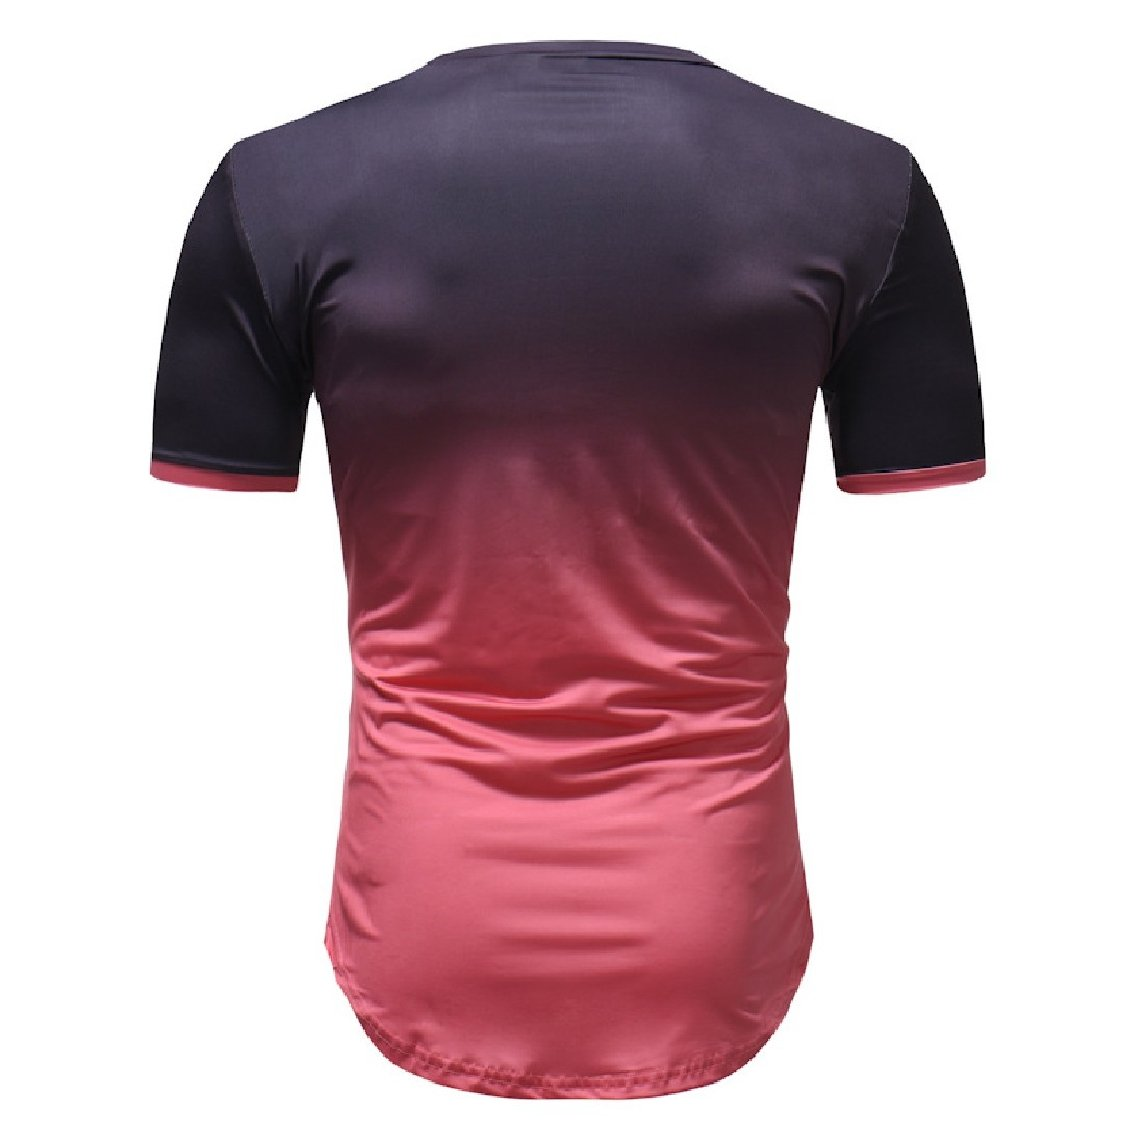 Nicelly Men Short-Sleeve Ombre Fitted Cozy Summer Classic T-Shirt Top